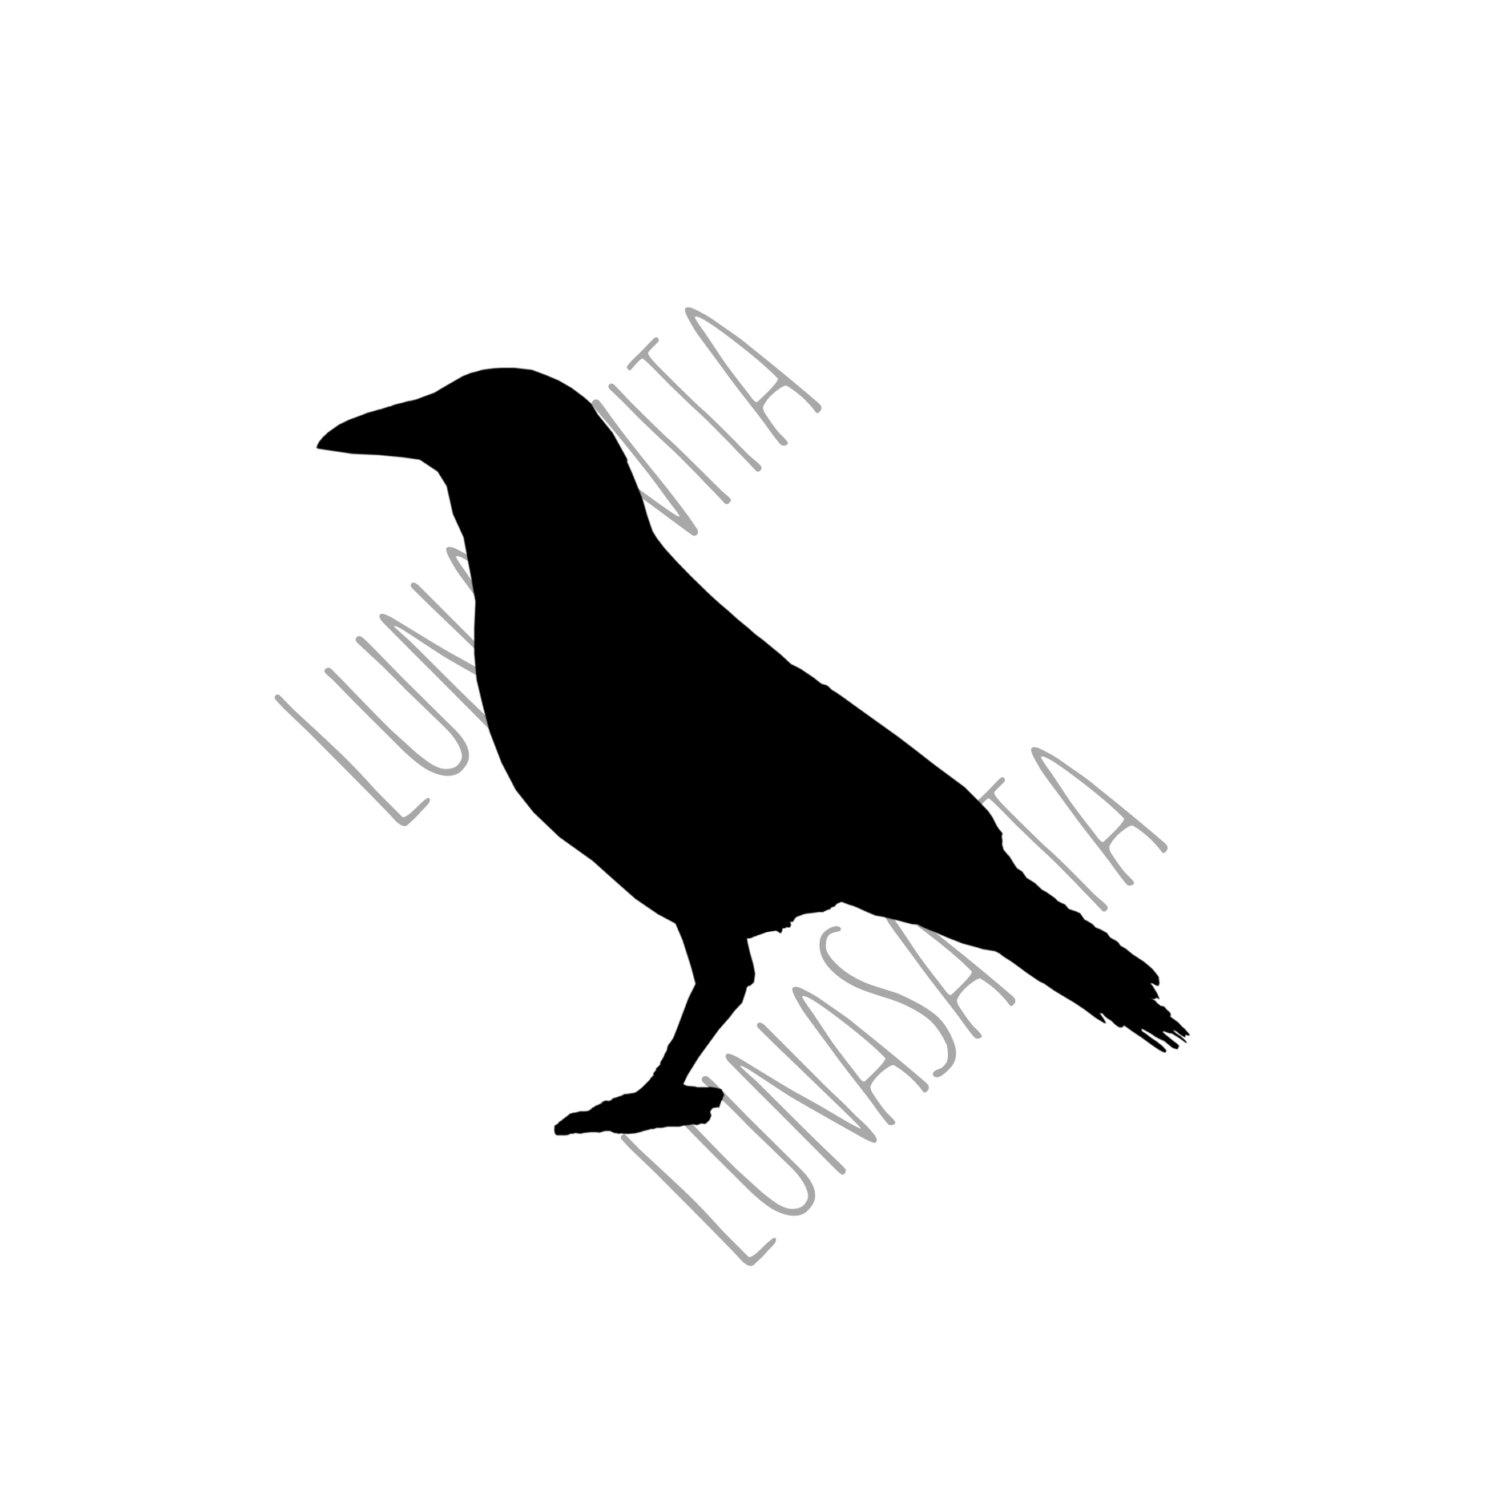 Crow svg #6, Download drawings